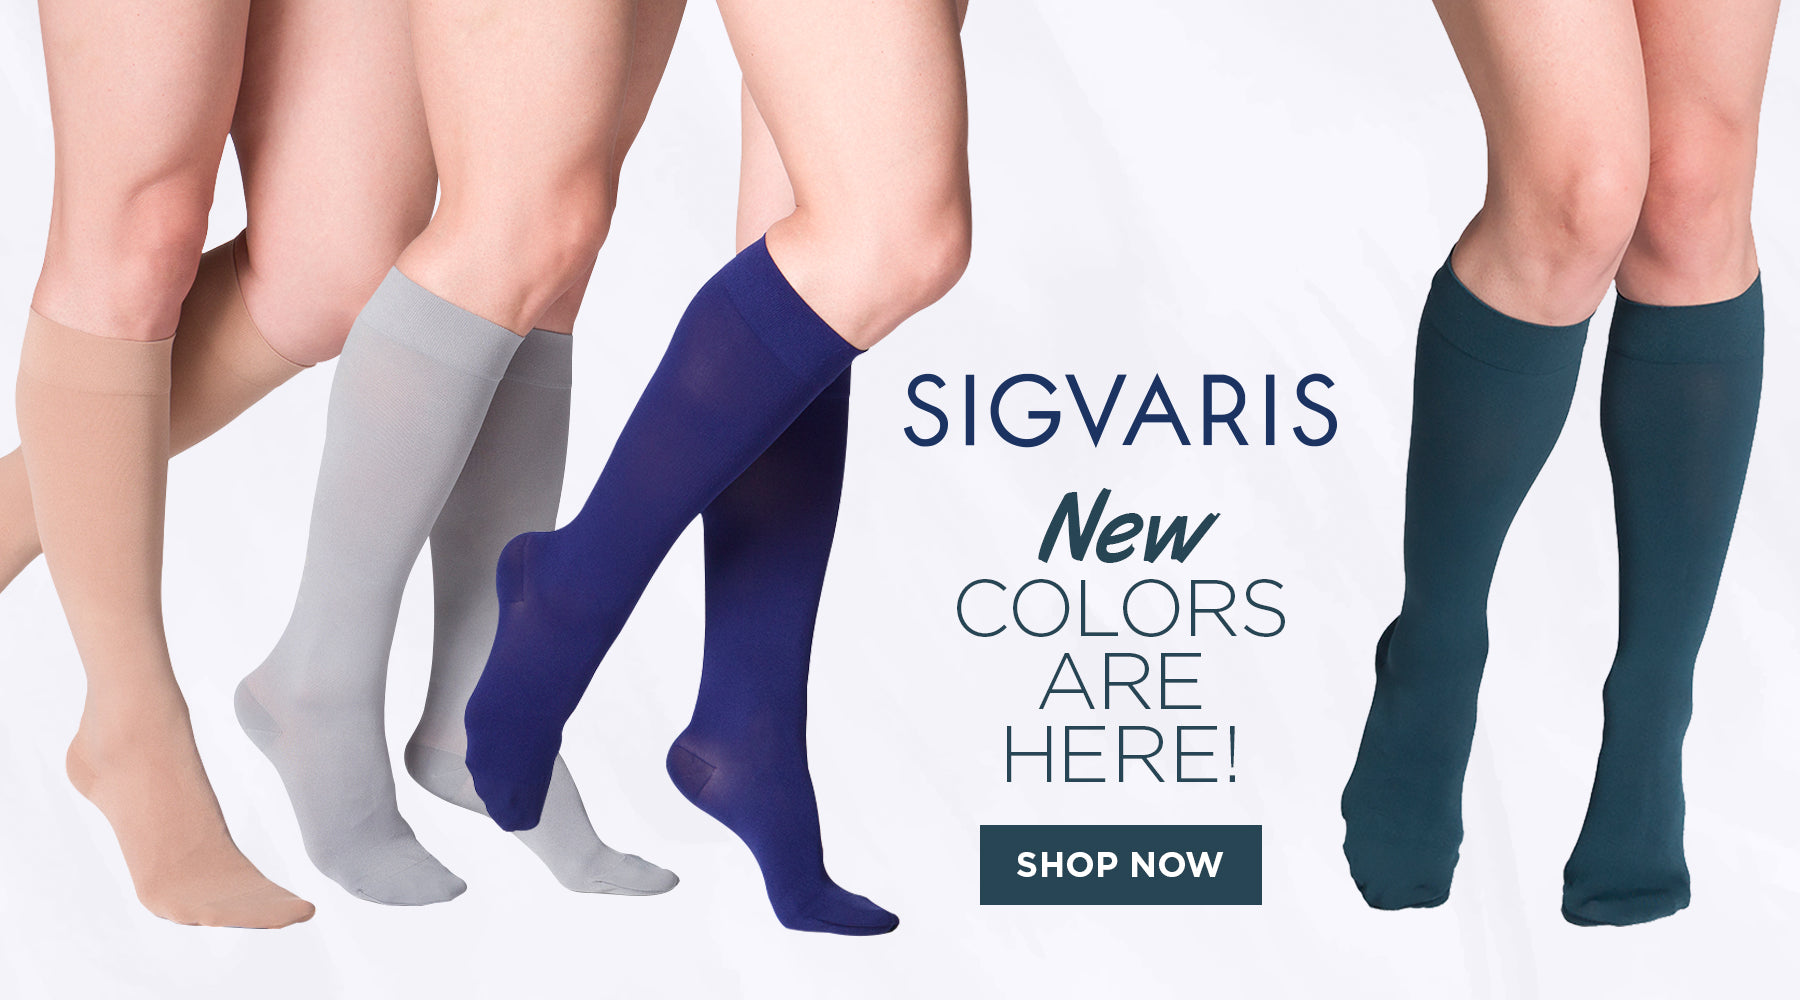 Sigvaris Stylish Colors Compression Stockings